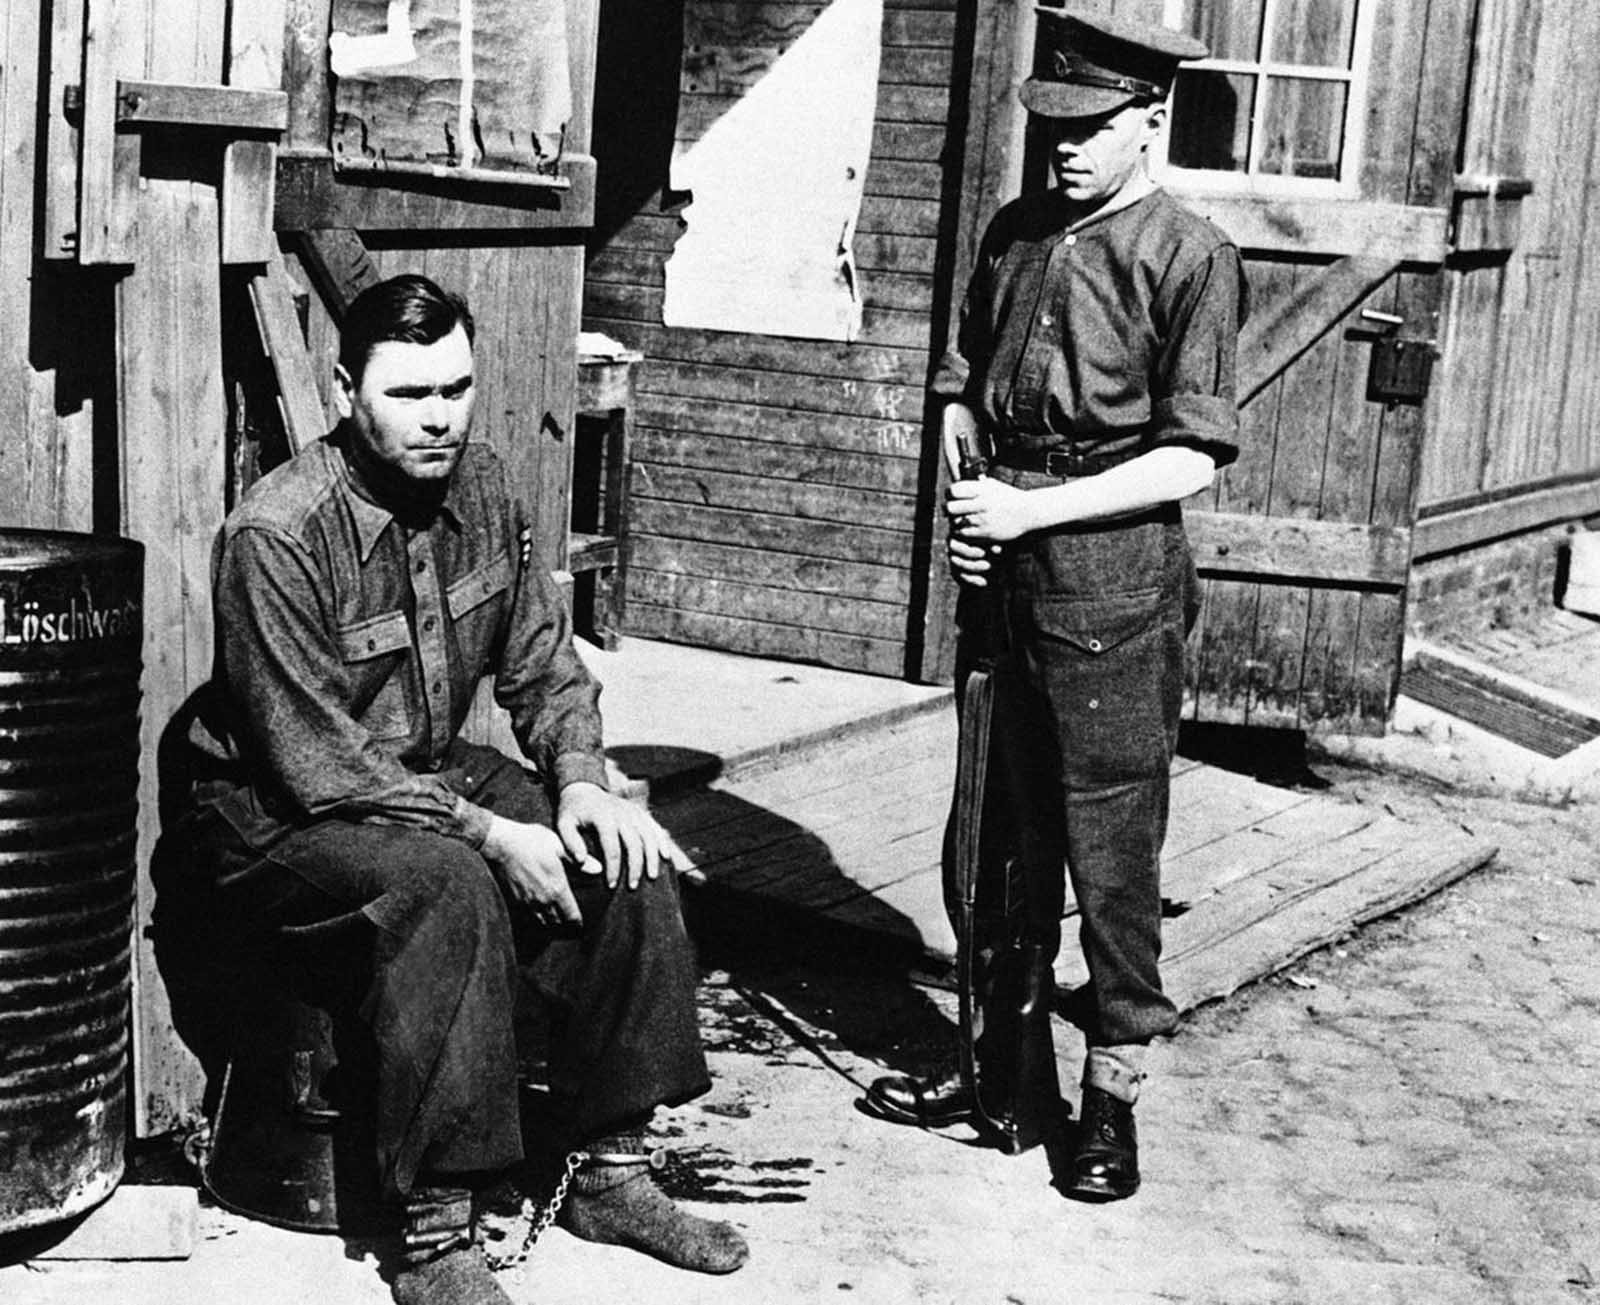 Manacled following his arrest is Joseph Kramer, commandant of the Bergen-Belsen concentration camp in Belsen, photographed on April 28, 1945. After standing trial, Kramer,